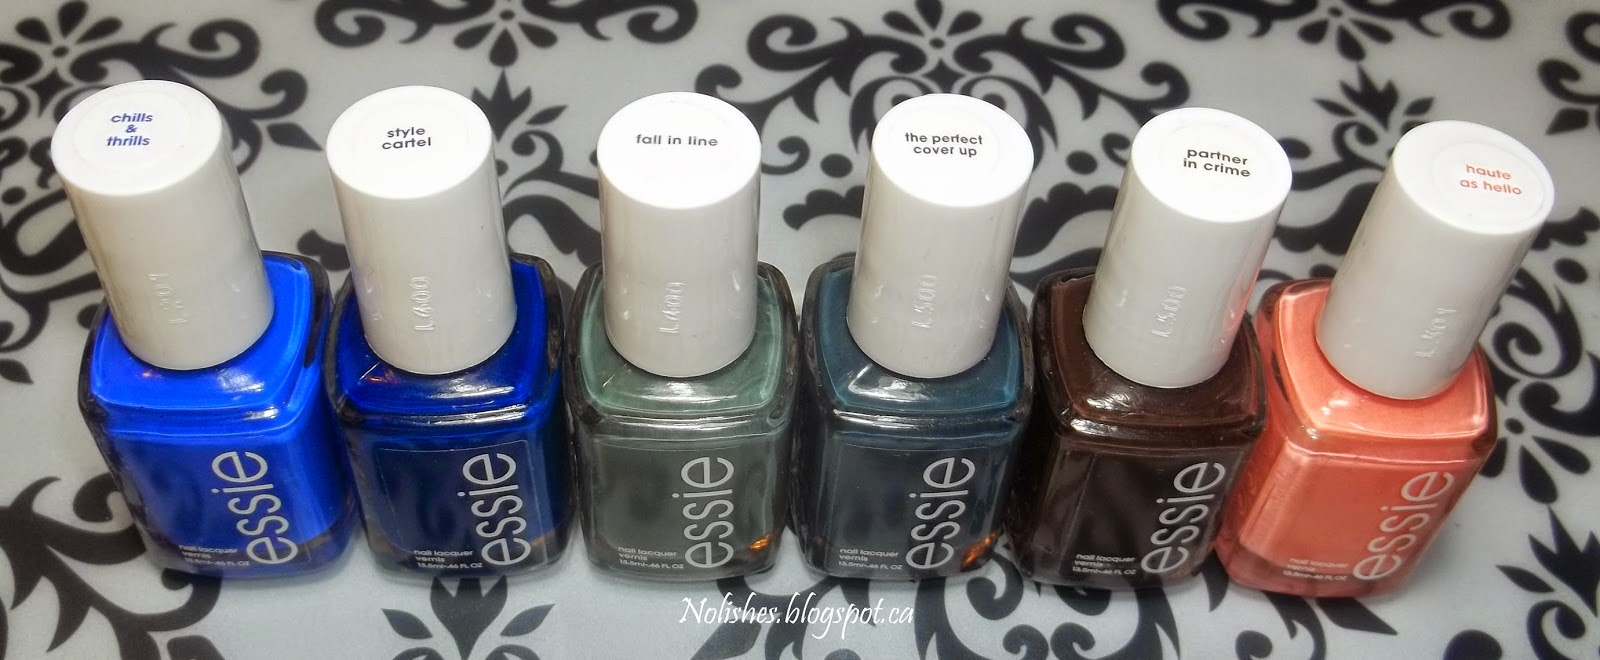 'Chills and Thrills', 'Style Cartel', 'Fall in Line', 'The Perfect Cover Up', 'Partner in Crime', and 'Haute as Hello'